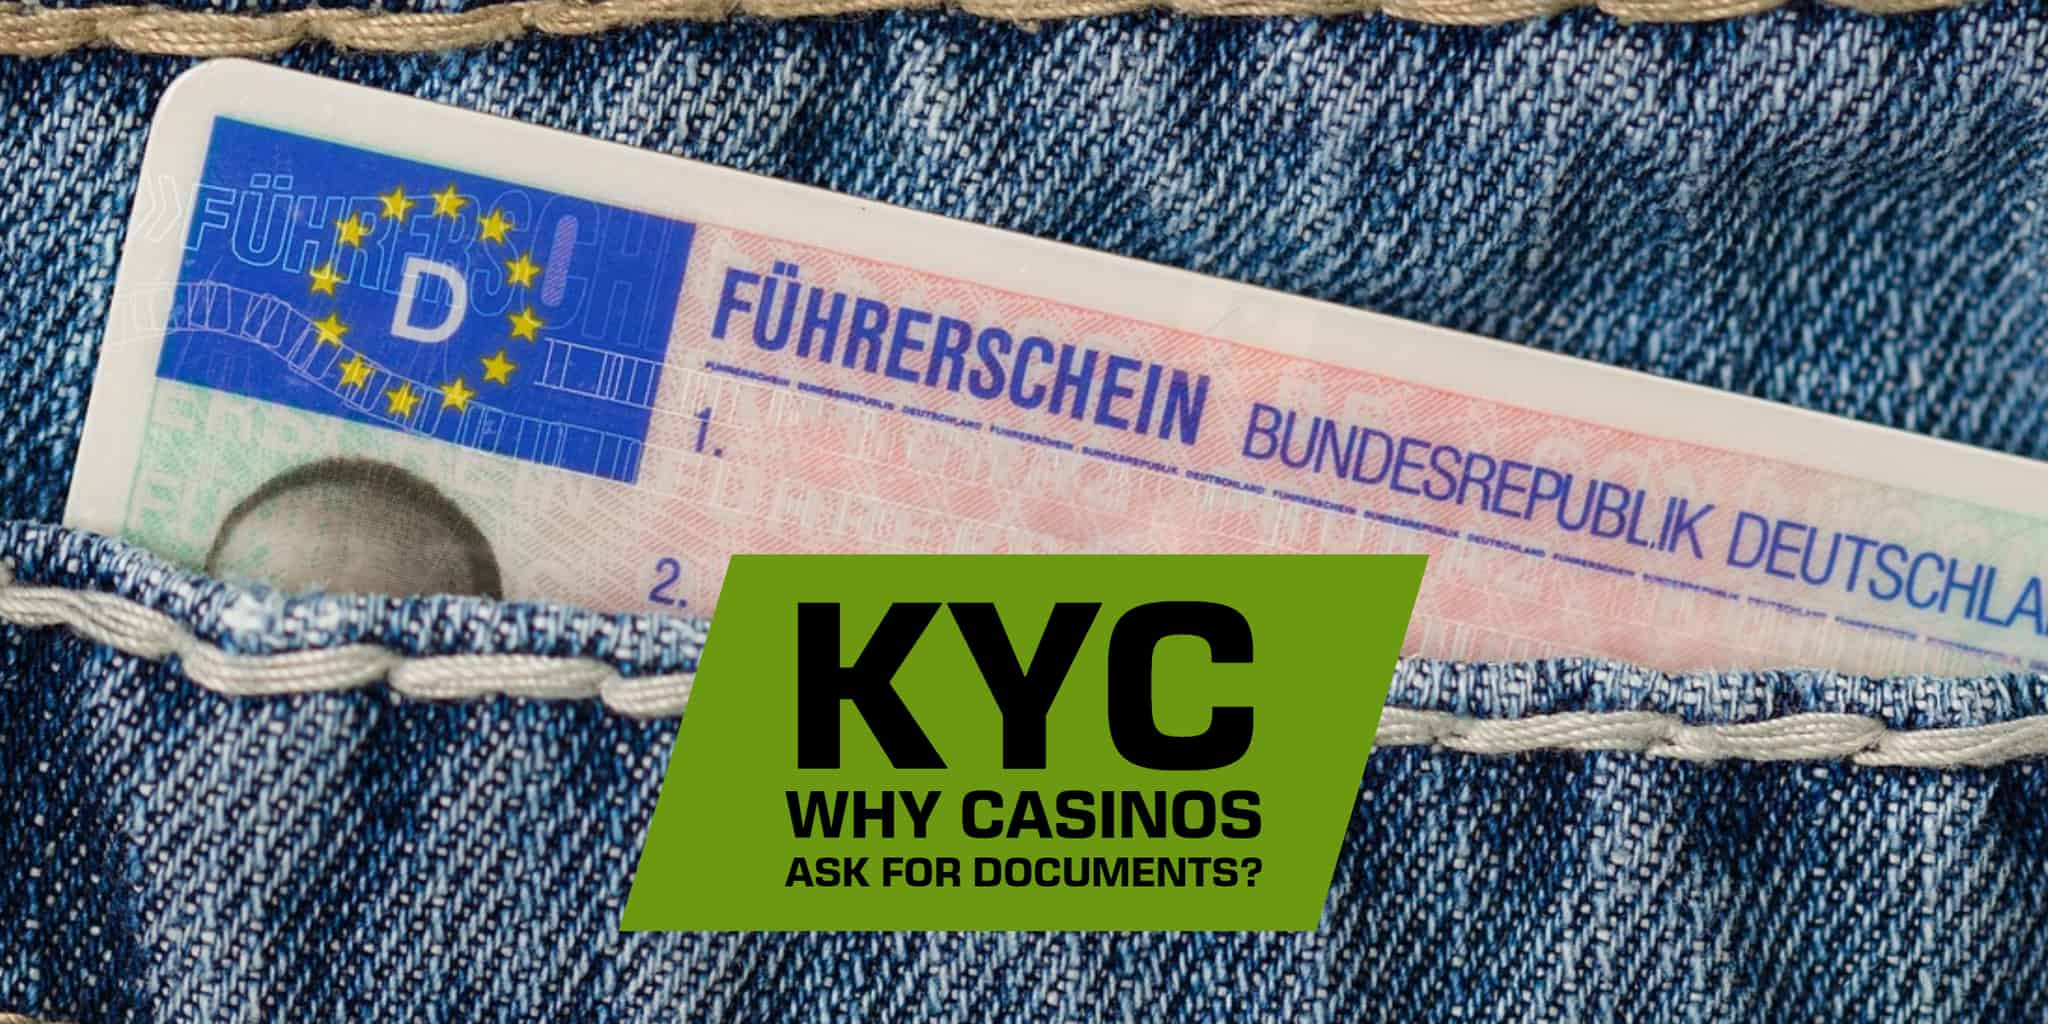 Know Your Customer - A guide to KYC and why casinos requests documentation from players